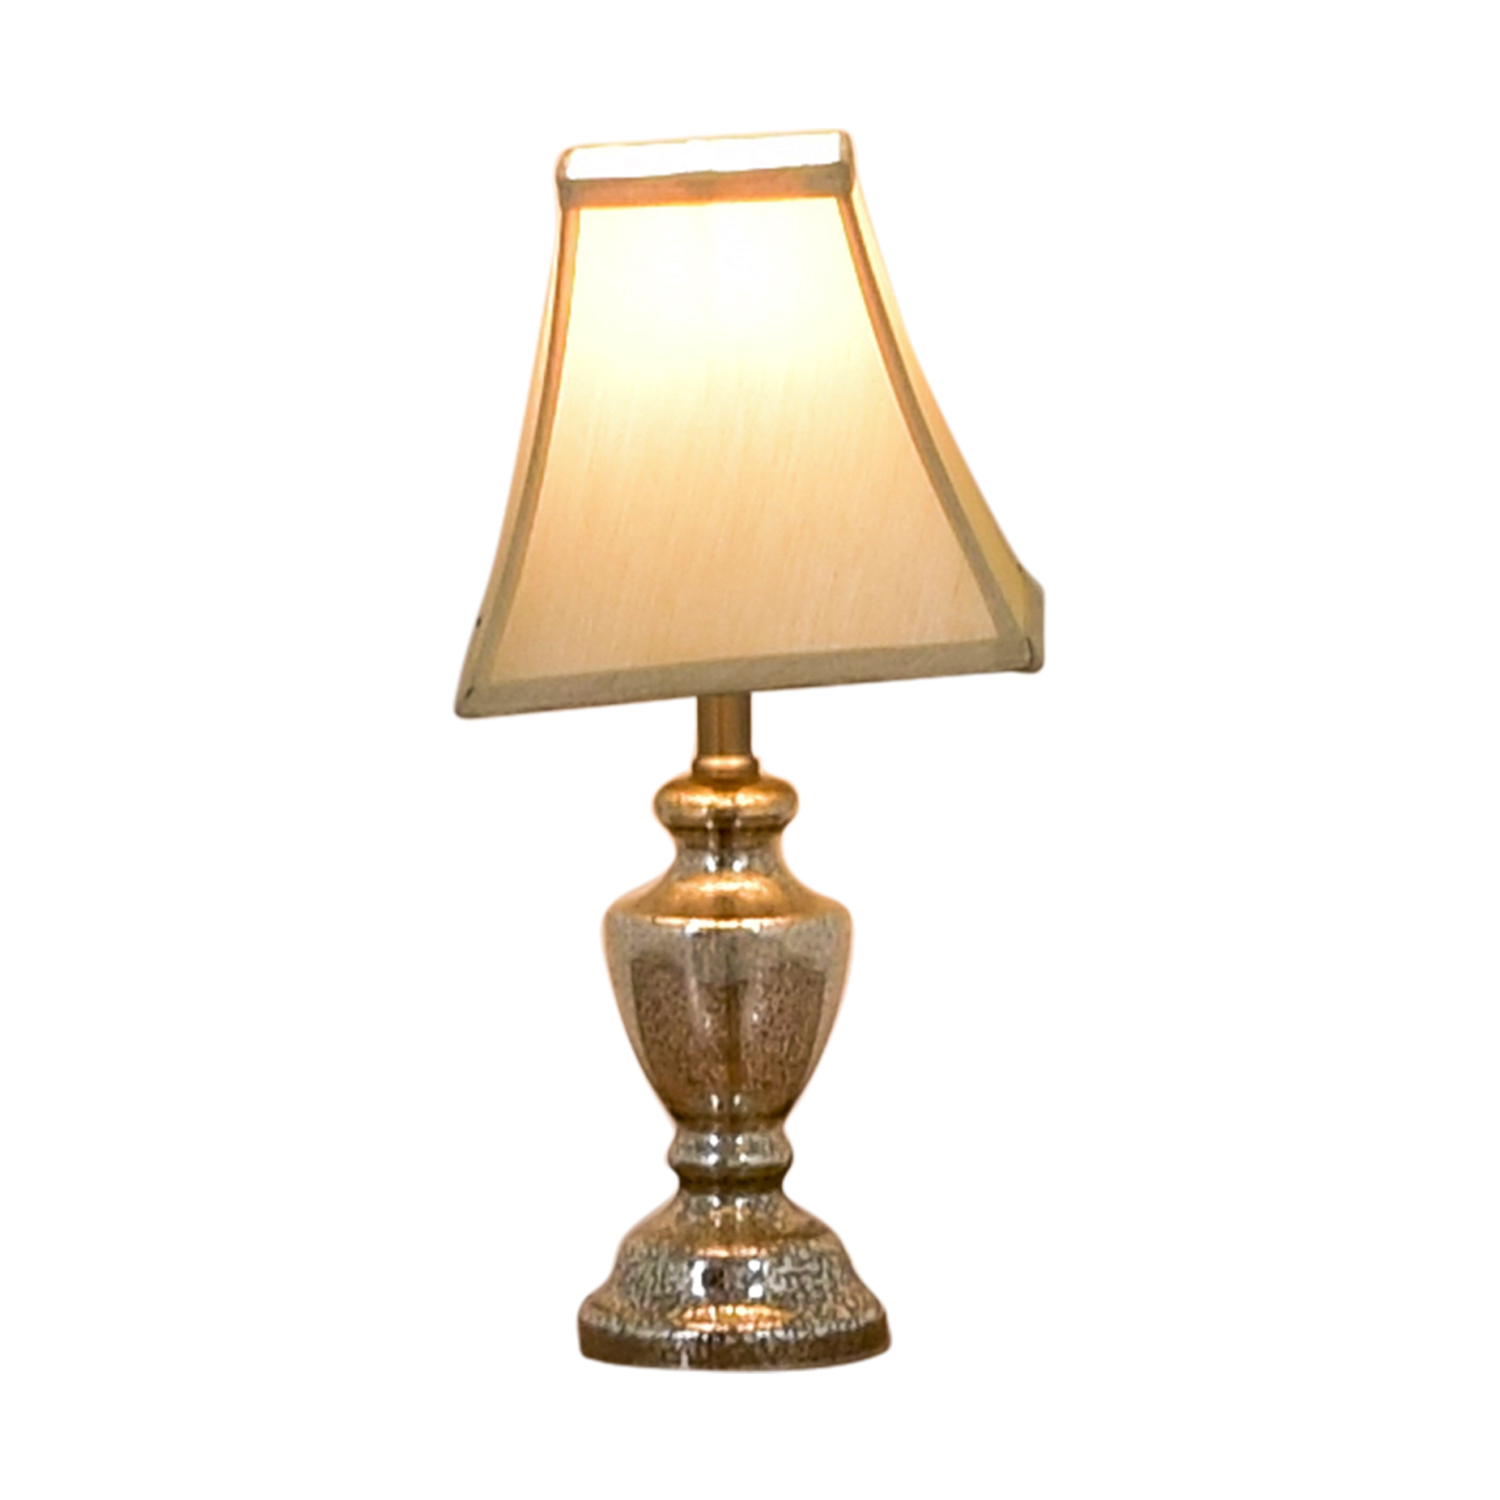 Bed Bath and Beyond Bed Bath and Beyond Slender Mercury Glass Table Lamp discount